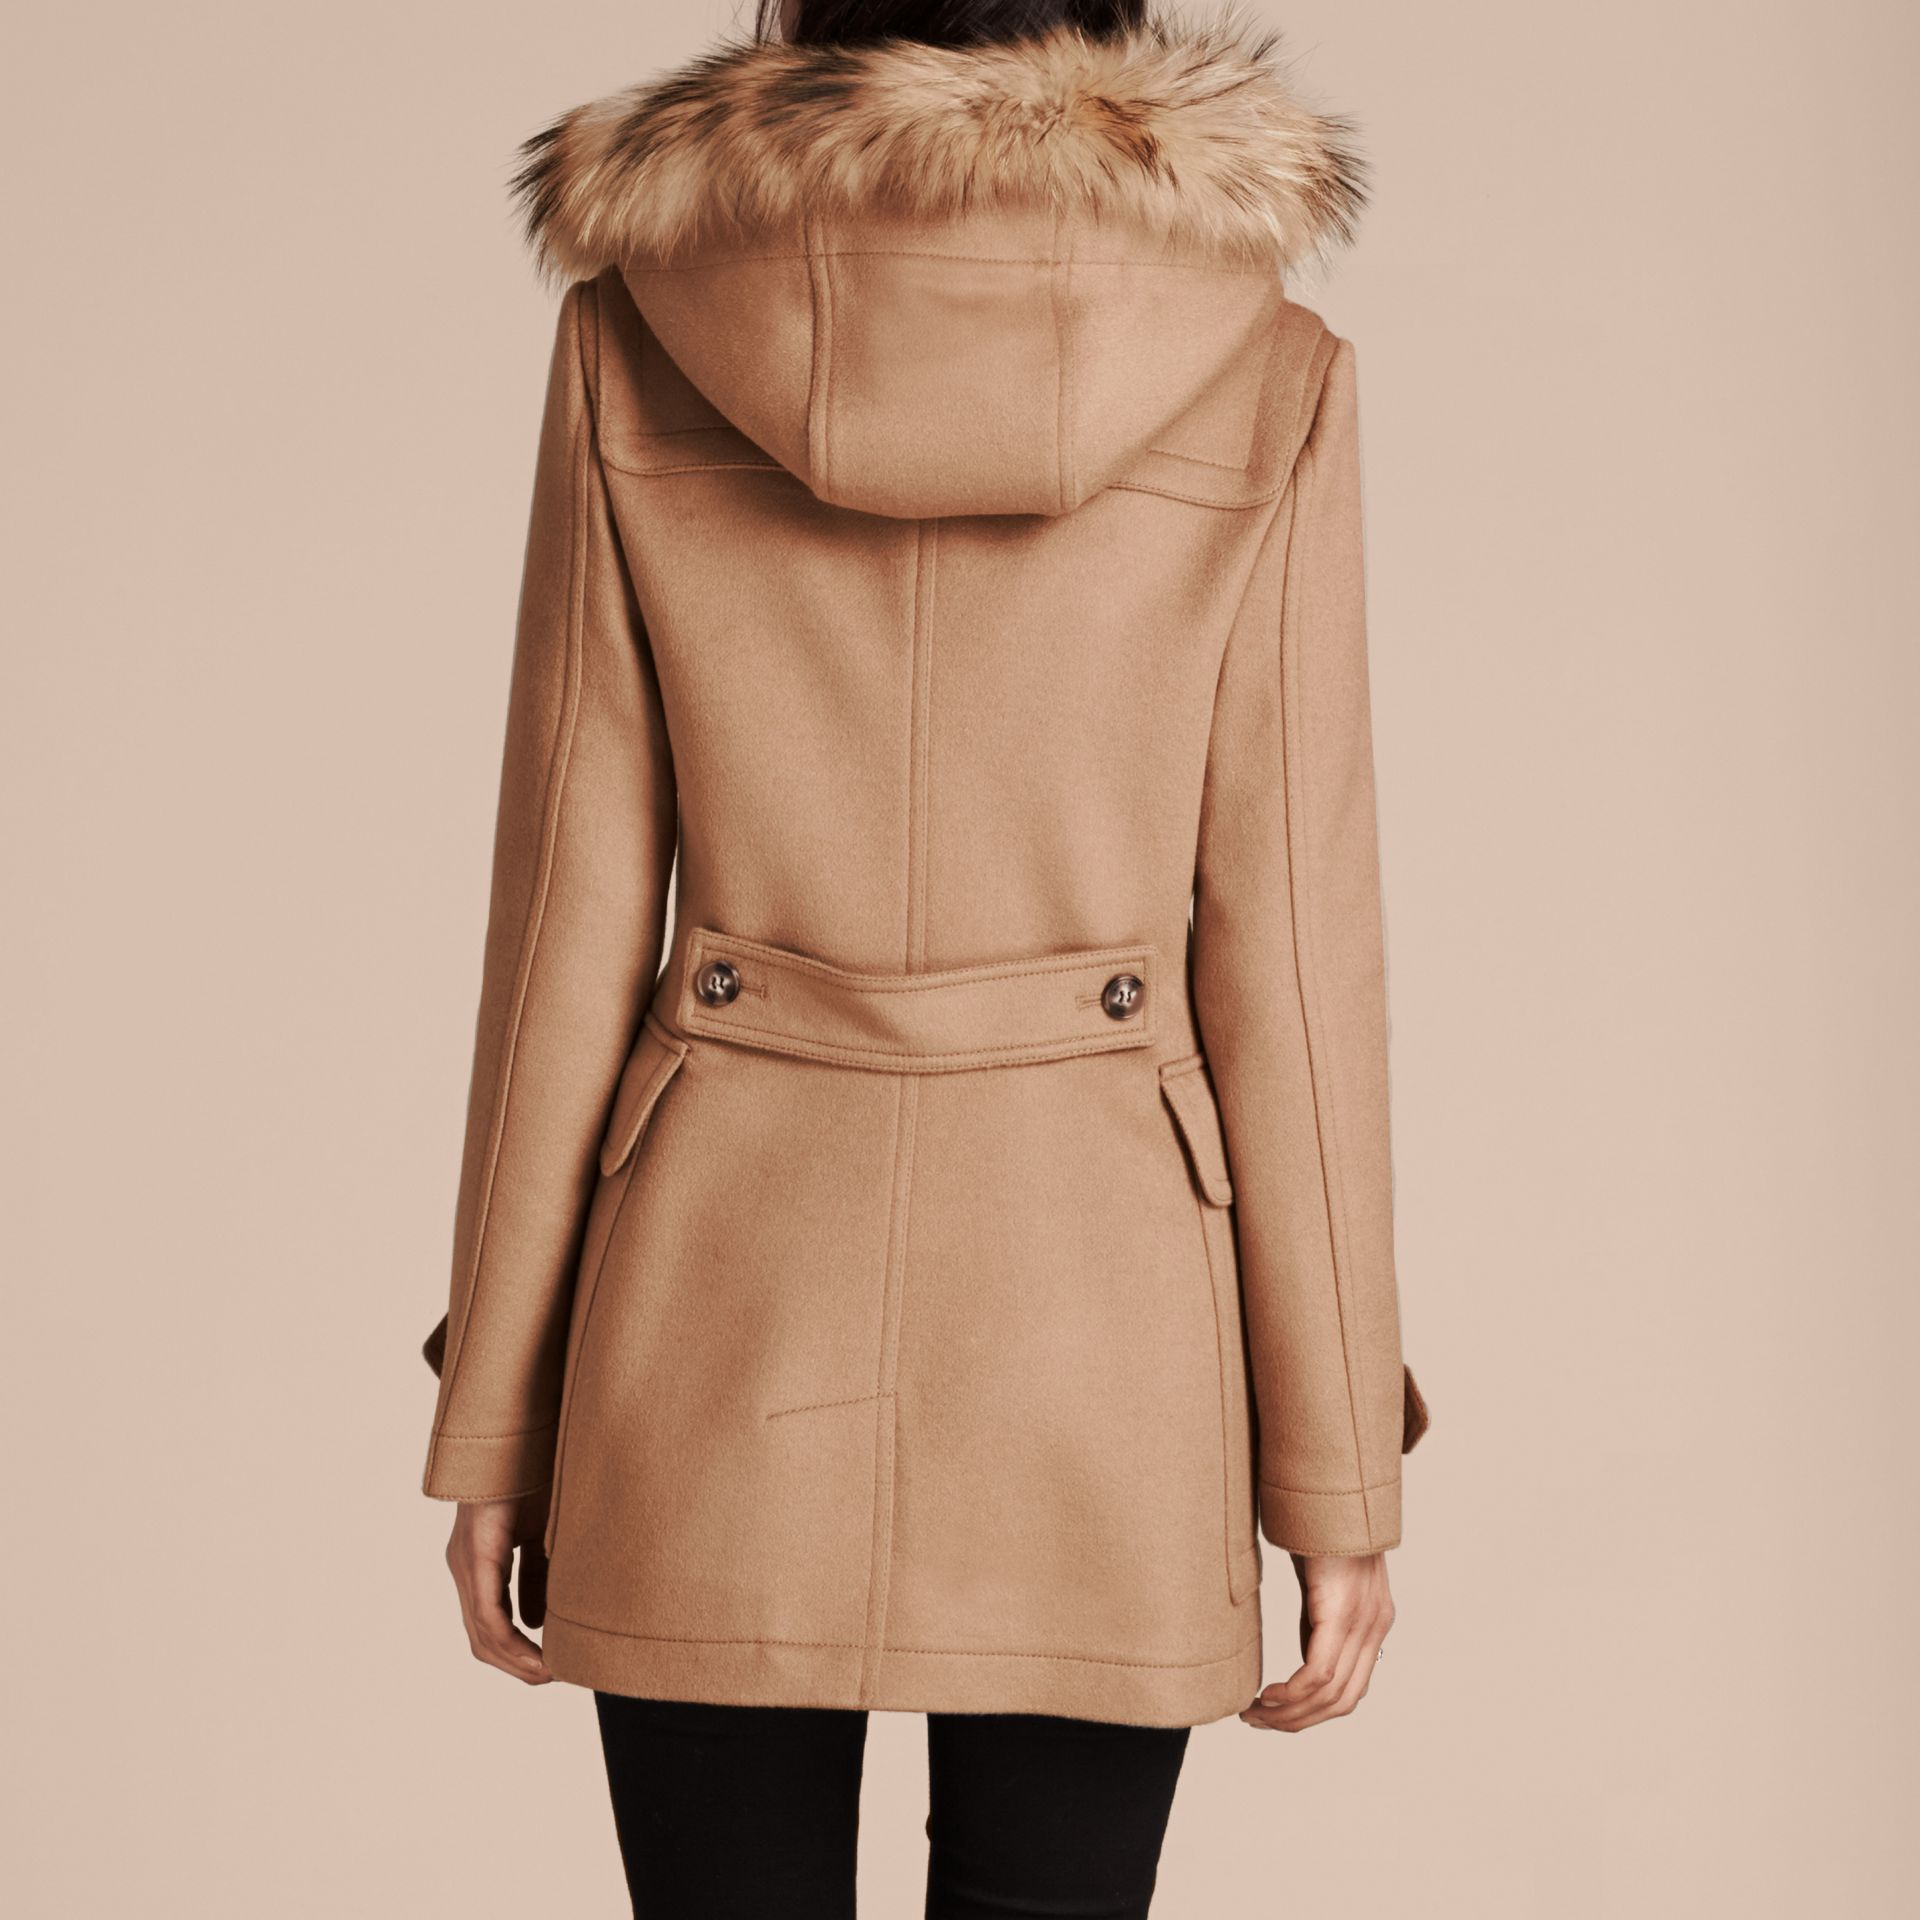 Camel Duffle-coat en laine avec bordure en fourrure amovible Camel - photo de la galerie 2